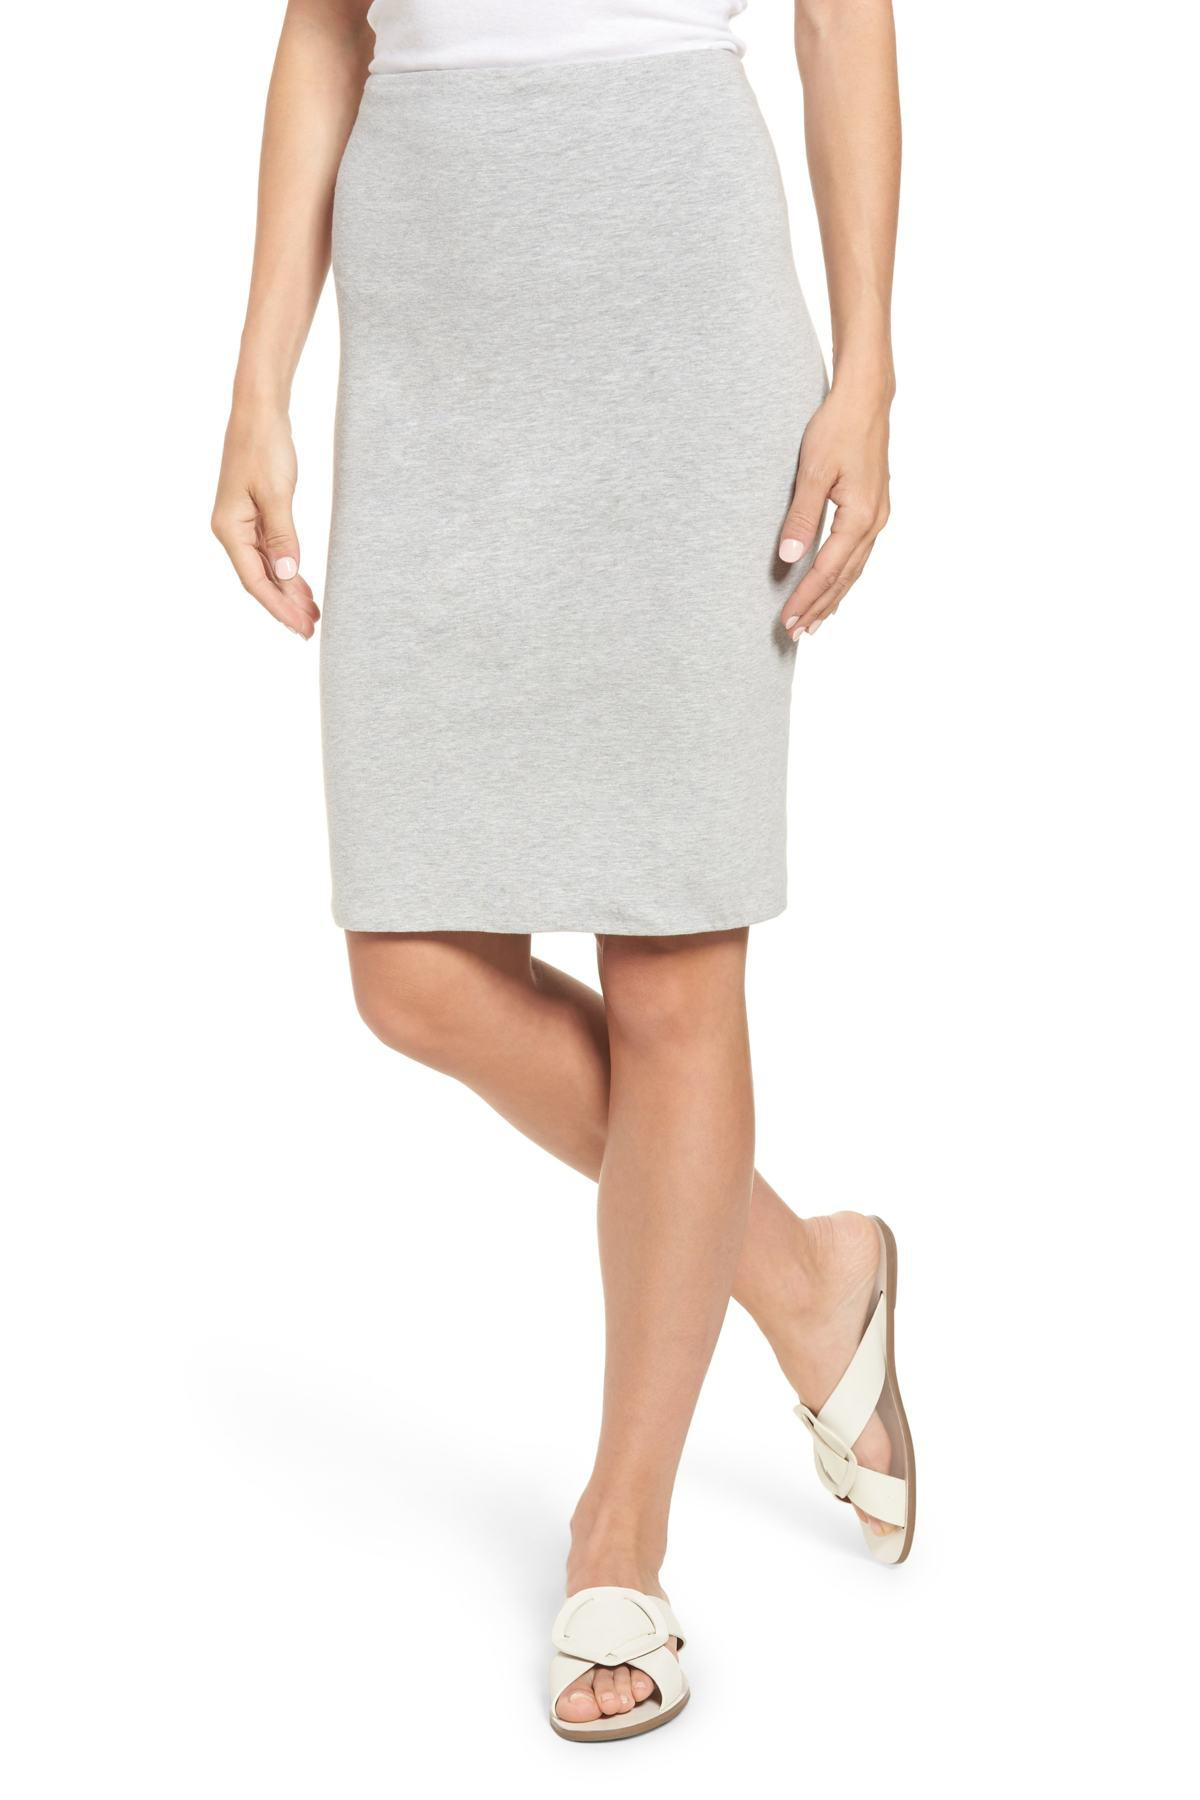 6301b147d Gallery. Previously sold at: Nordstrom, Nordstrom Rack · Women's Pencil  Skirts